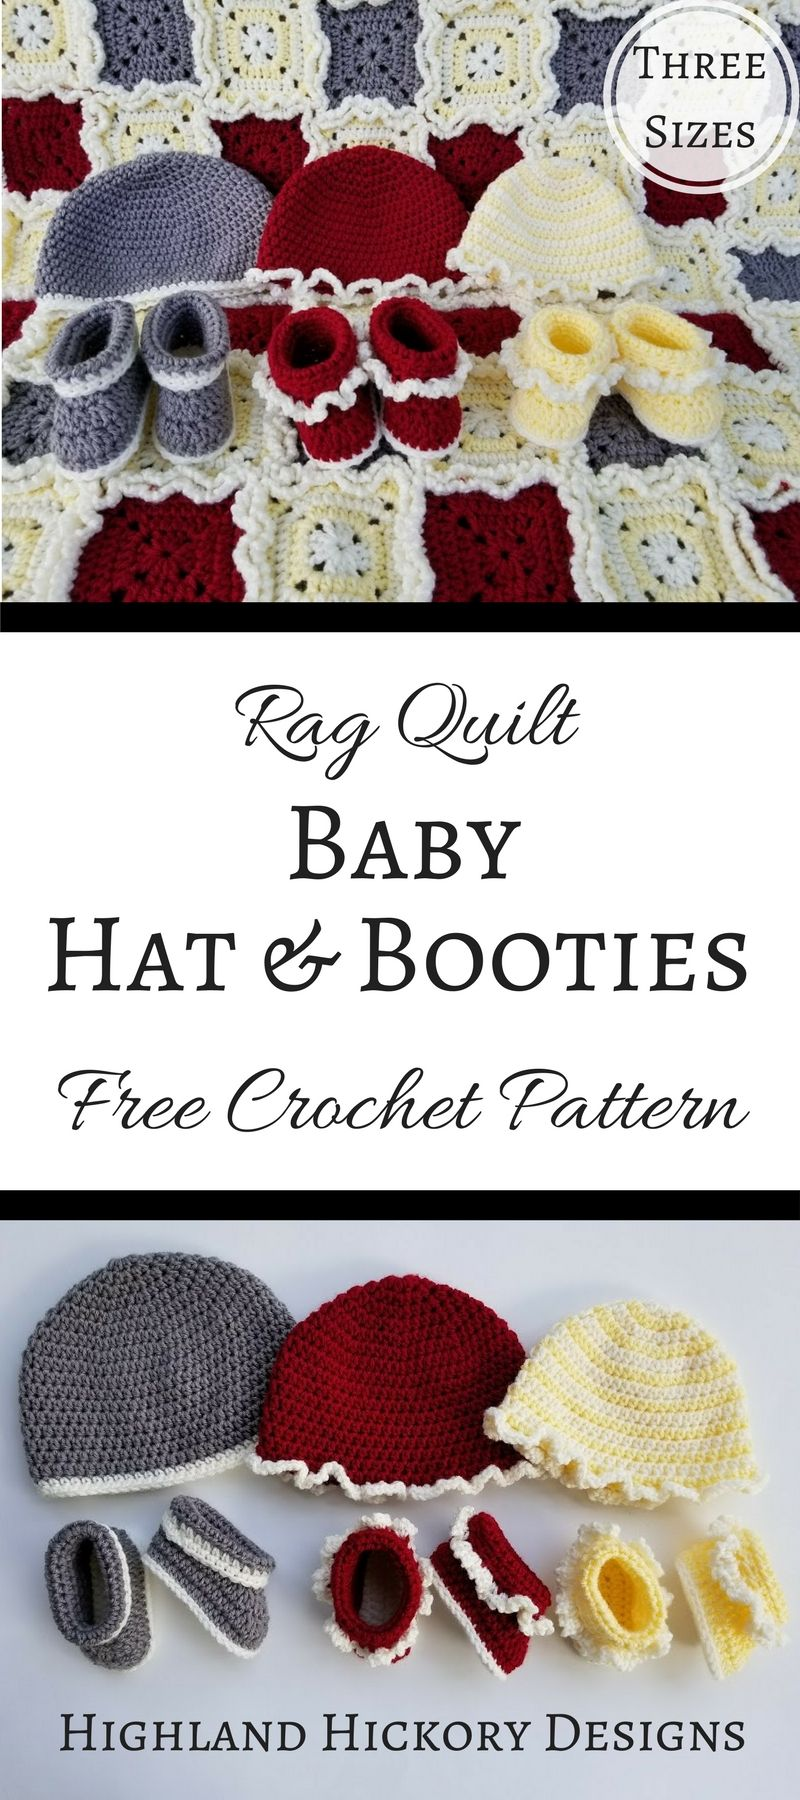 Rag Quilt Baby Hats and Booties | Highland Hickory Designs ...